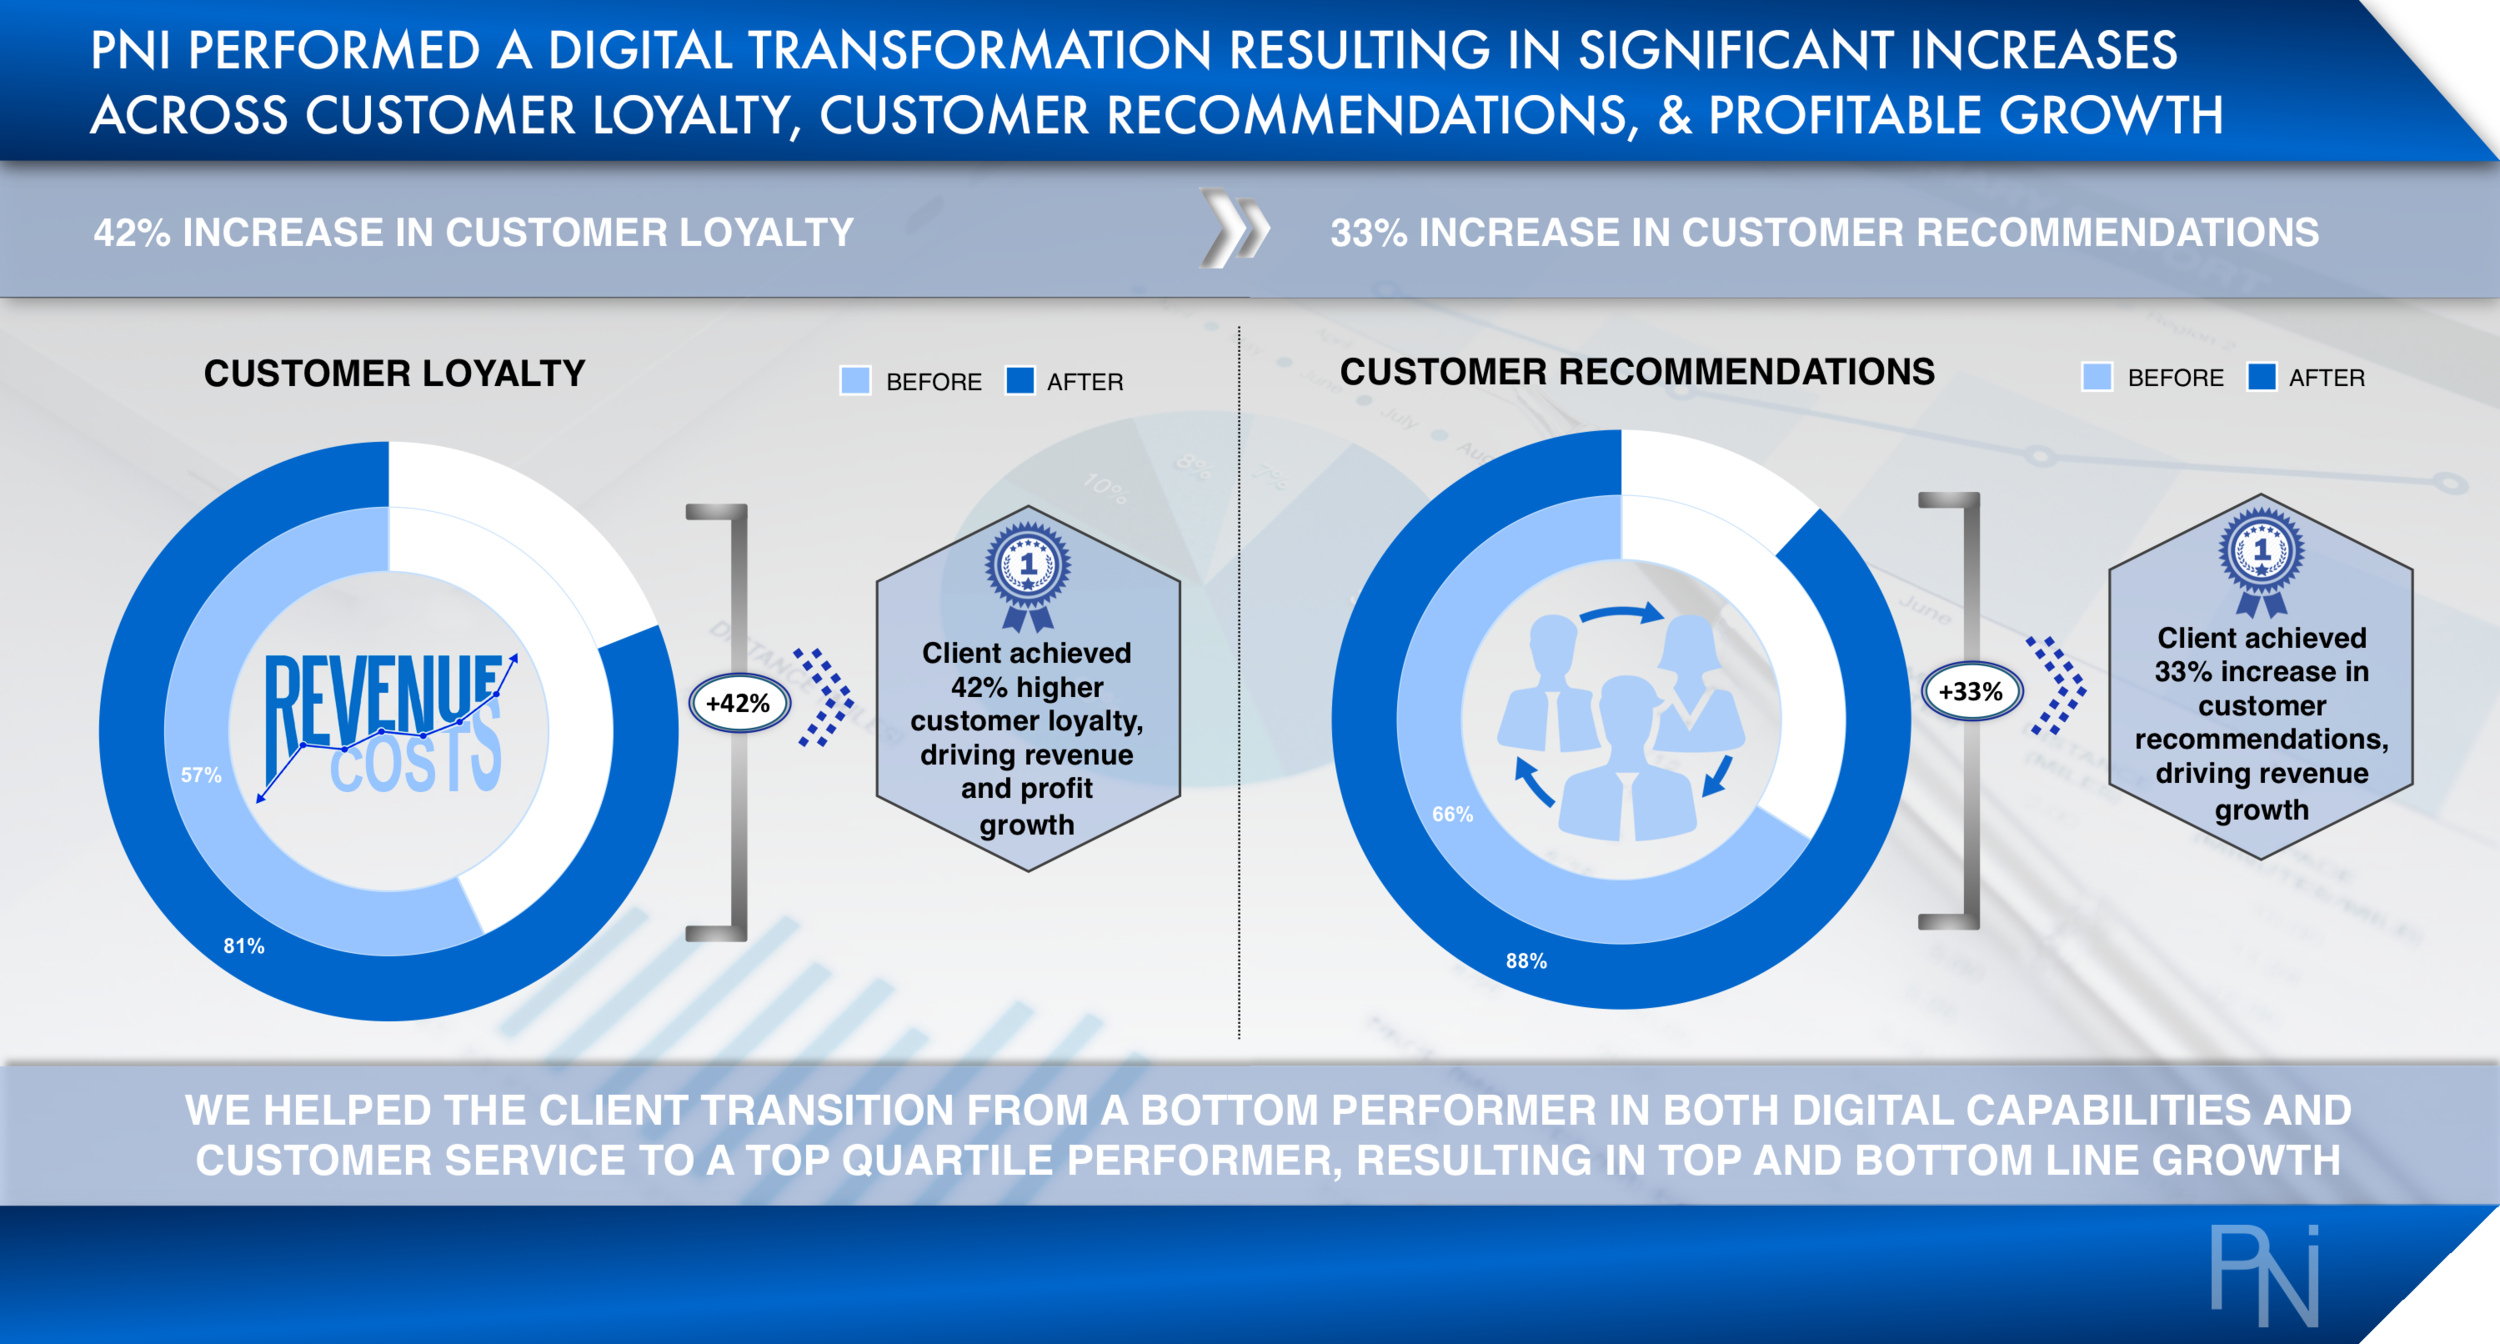 Case Study 3 - Digital Transformation (PNI Consulting).png